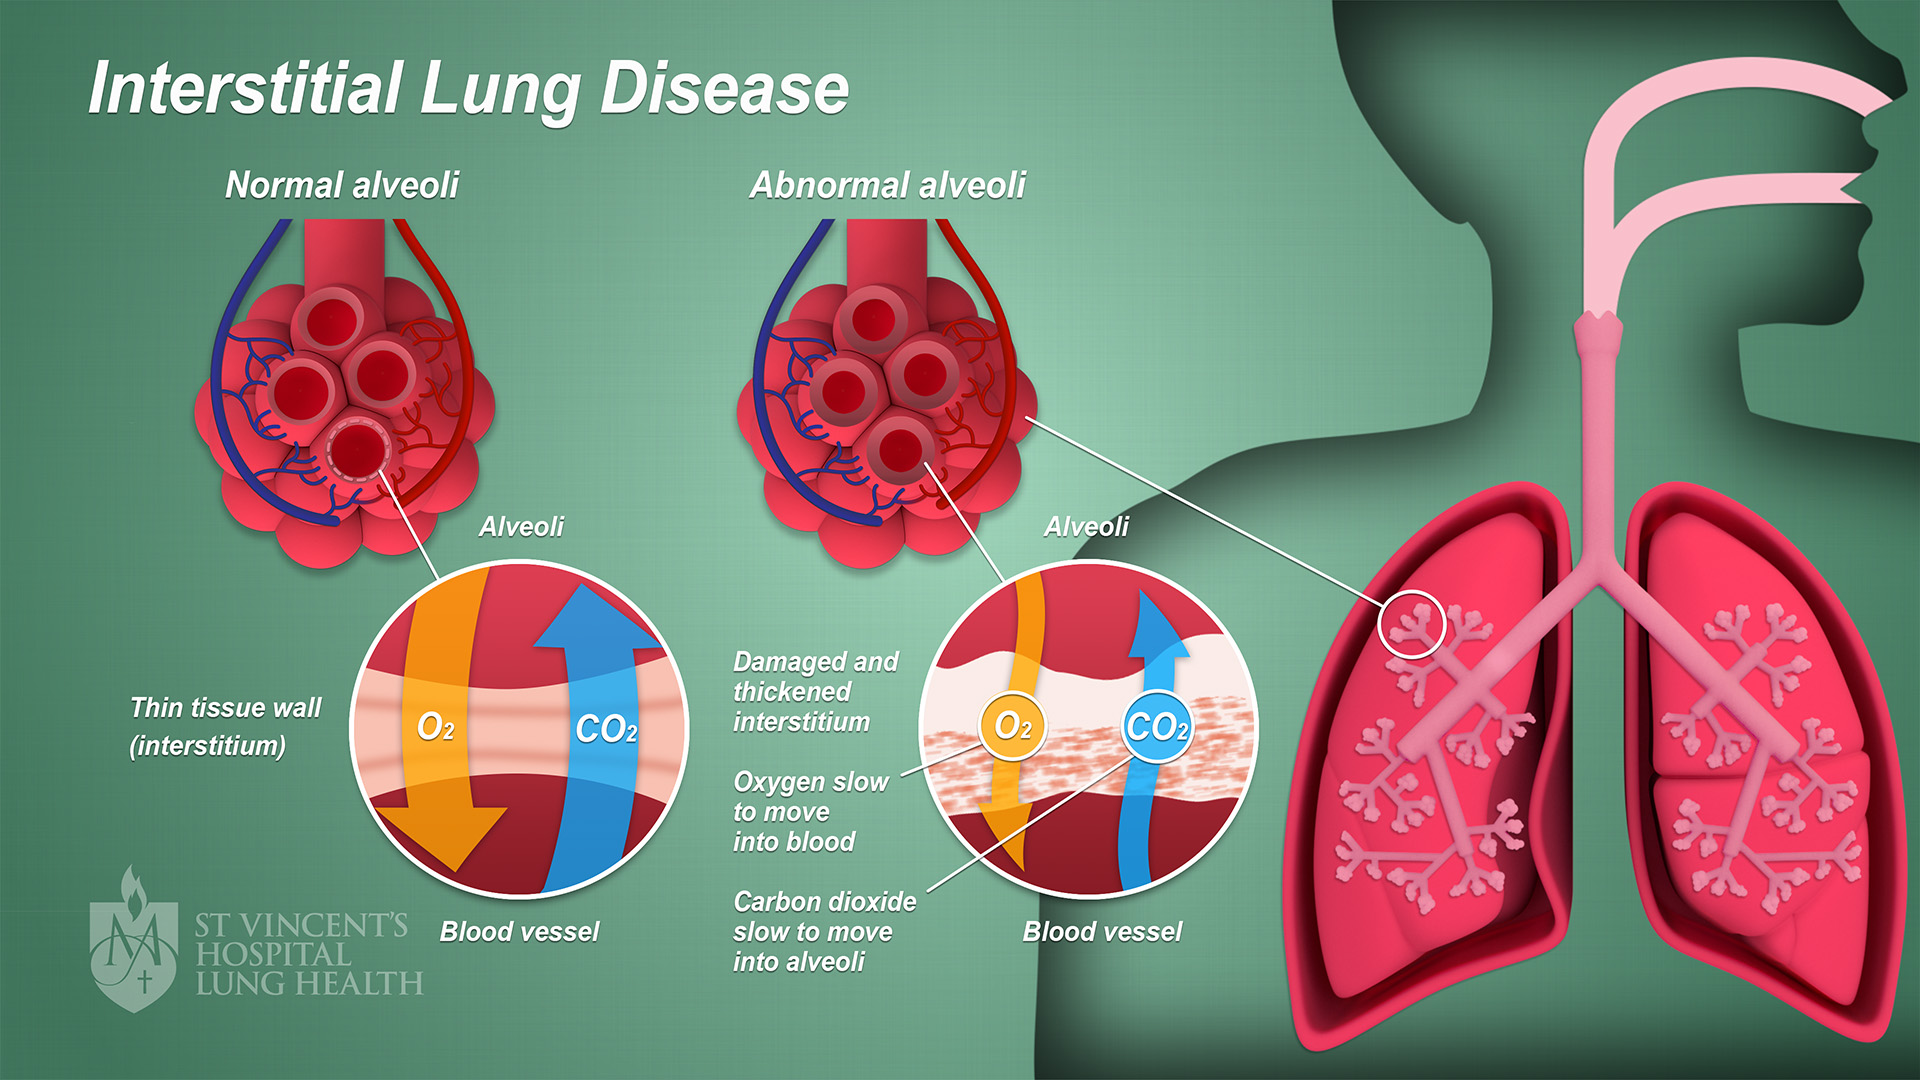 2_SVH_Lung_Health_Interstitial_Lung_Disease_final_1080